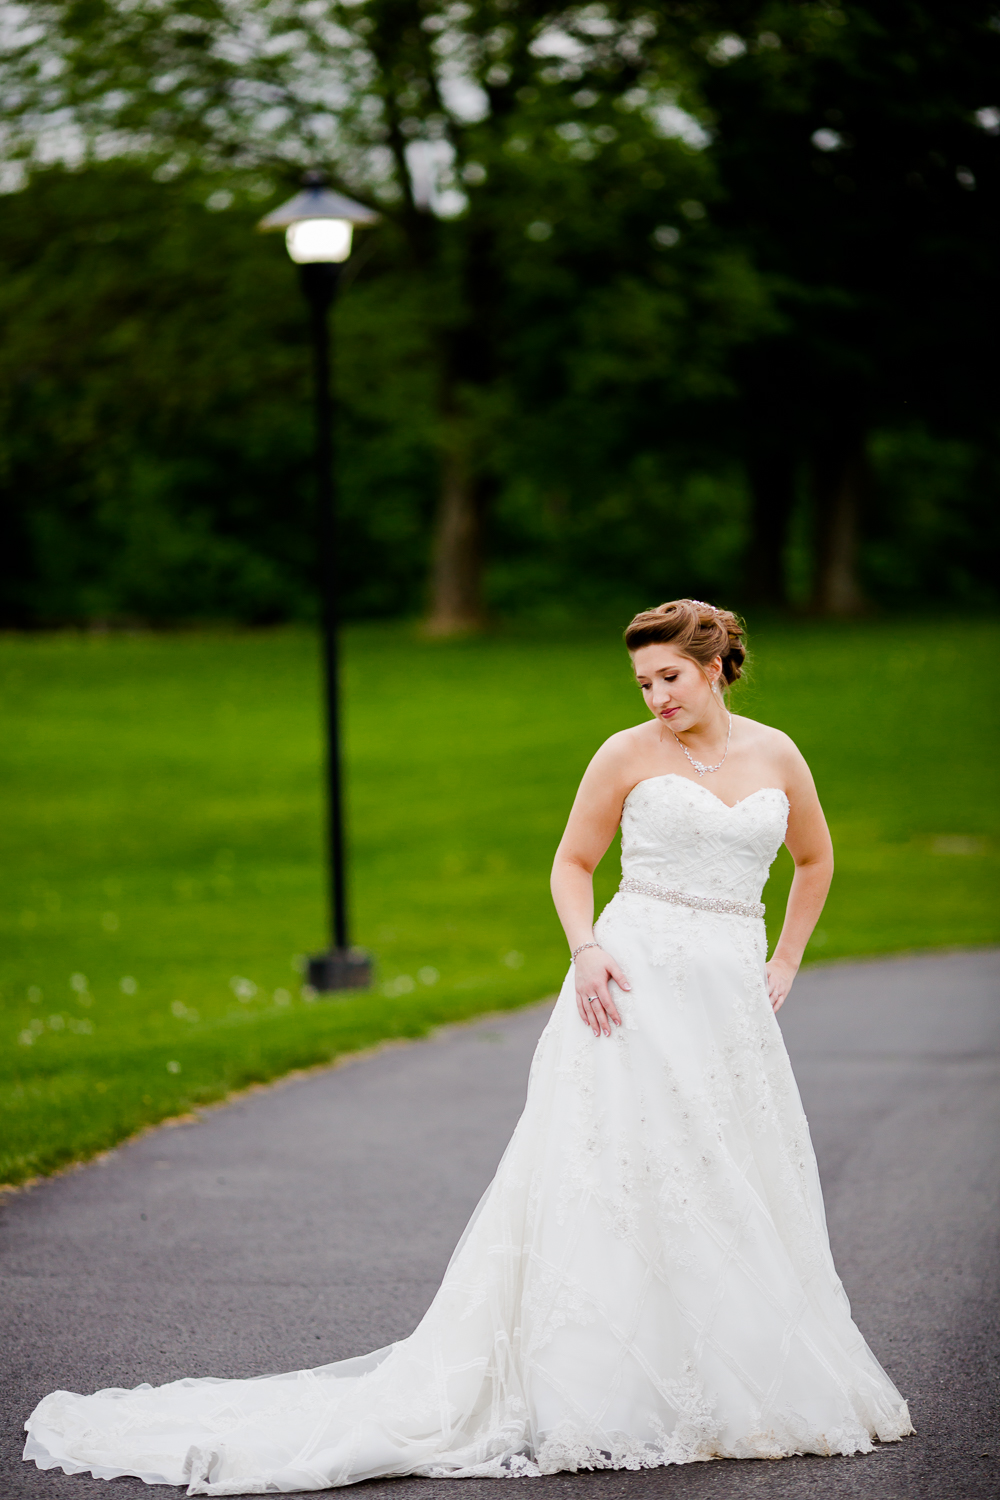 Portrait of a bride in a white wedding dress. She has a jewel belt around her waist. She is looking over her shoulder. There is green grass and a lamp post in the background.